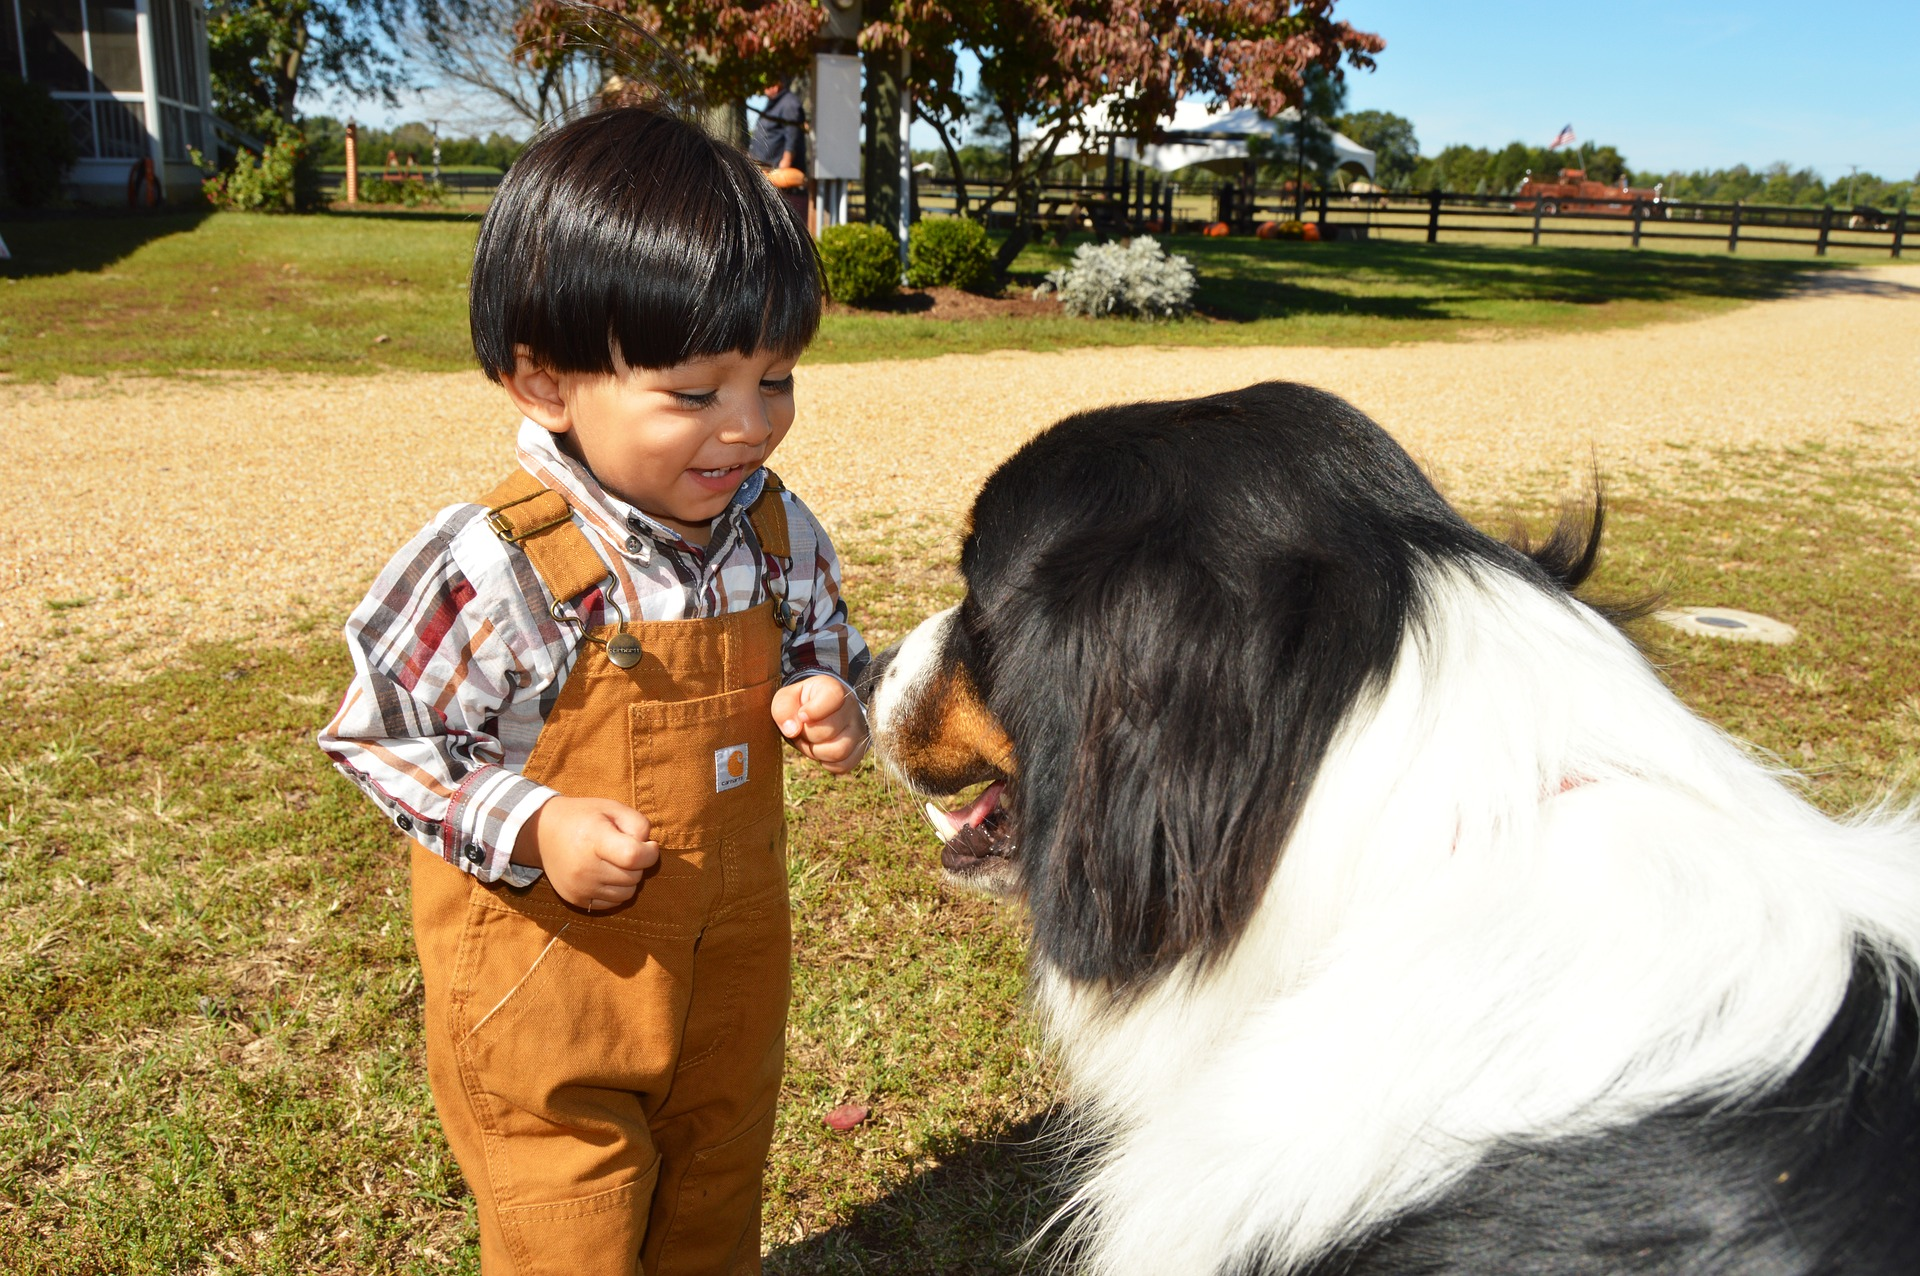 Small boy on a farm with a dog